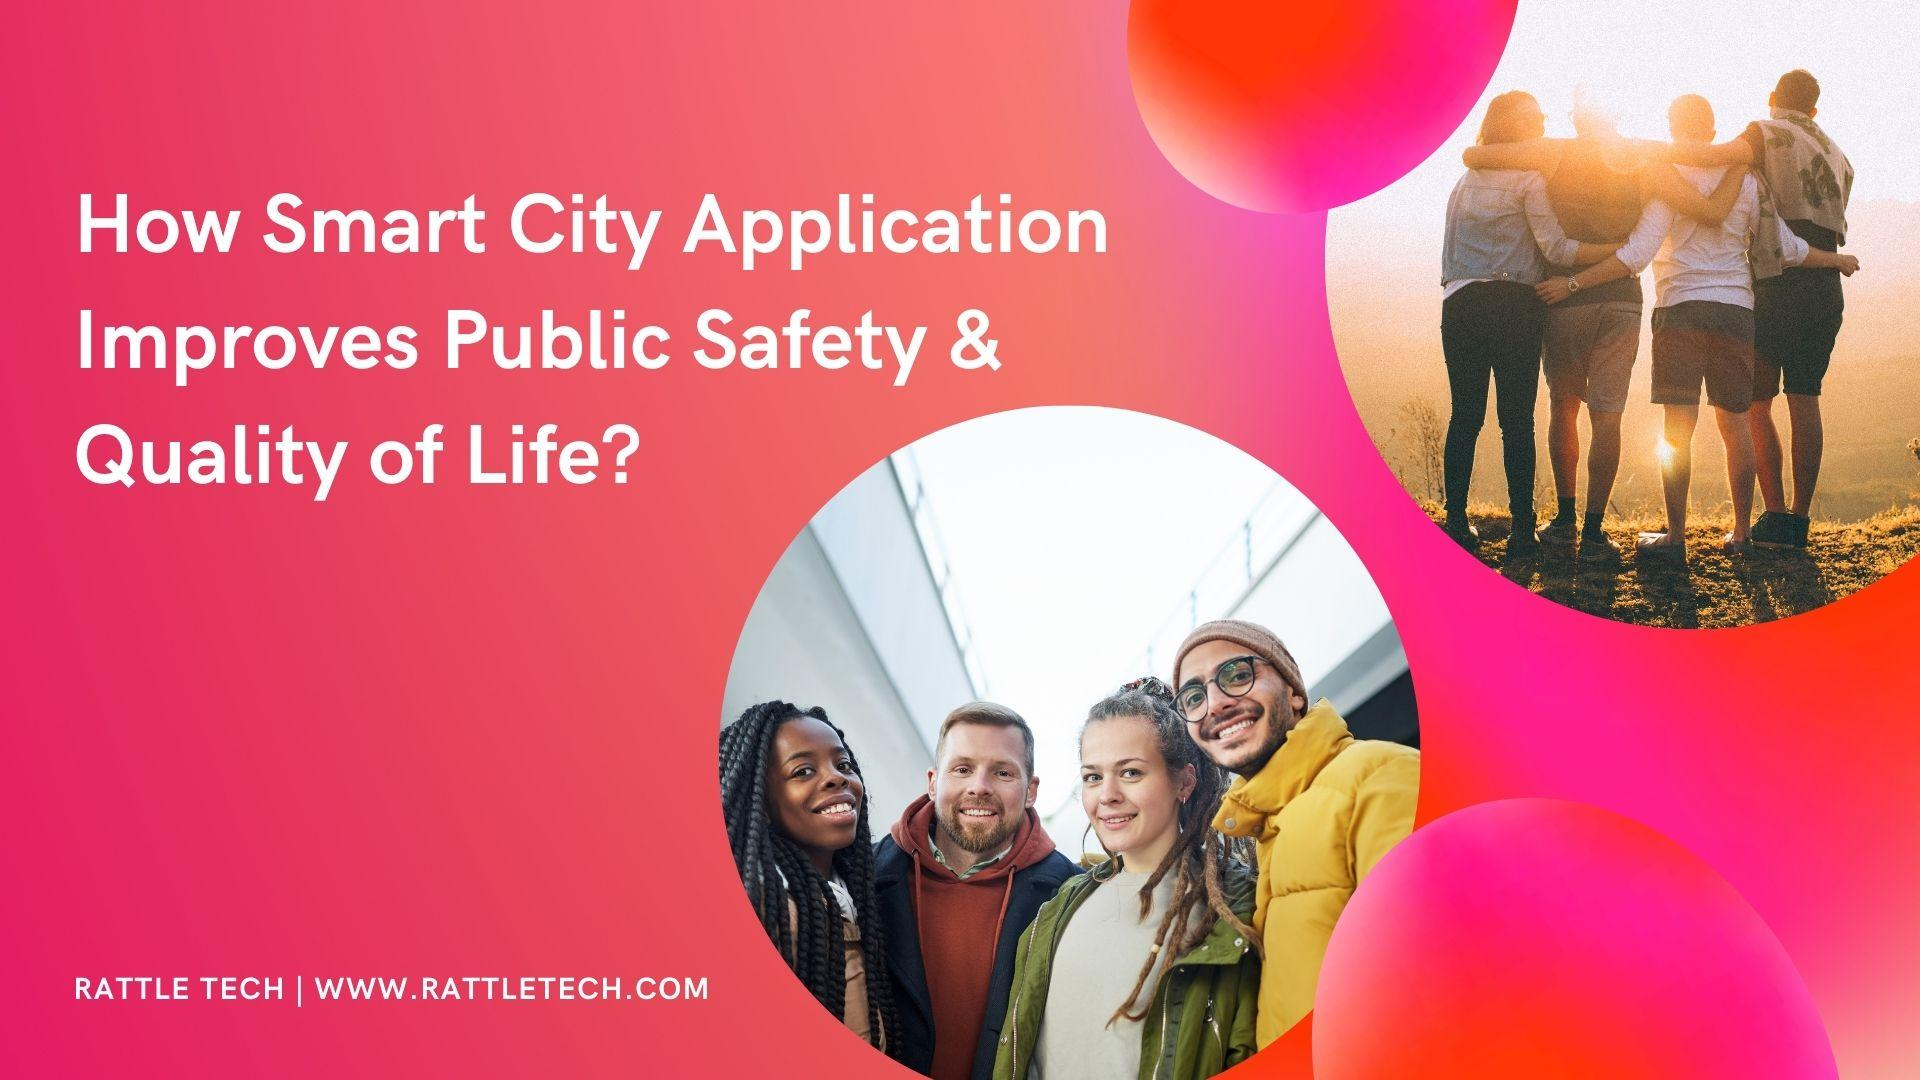 How Smart City Application Improves Public Safety & Quality of Life